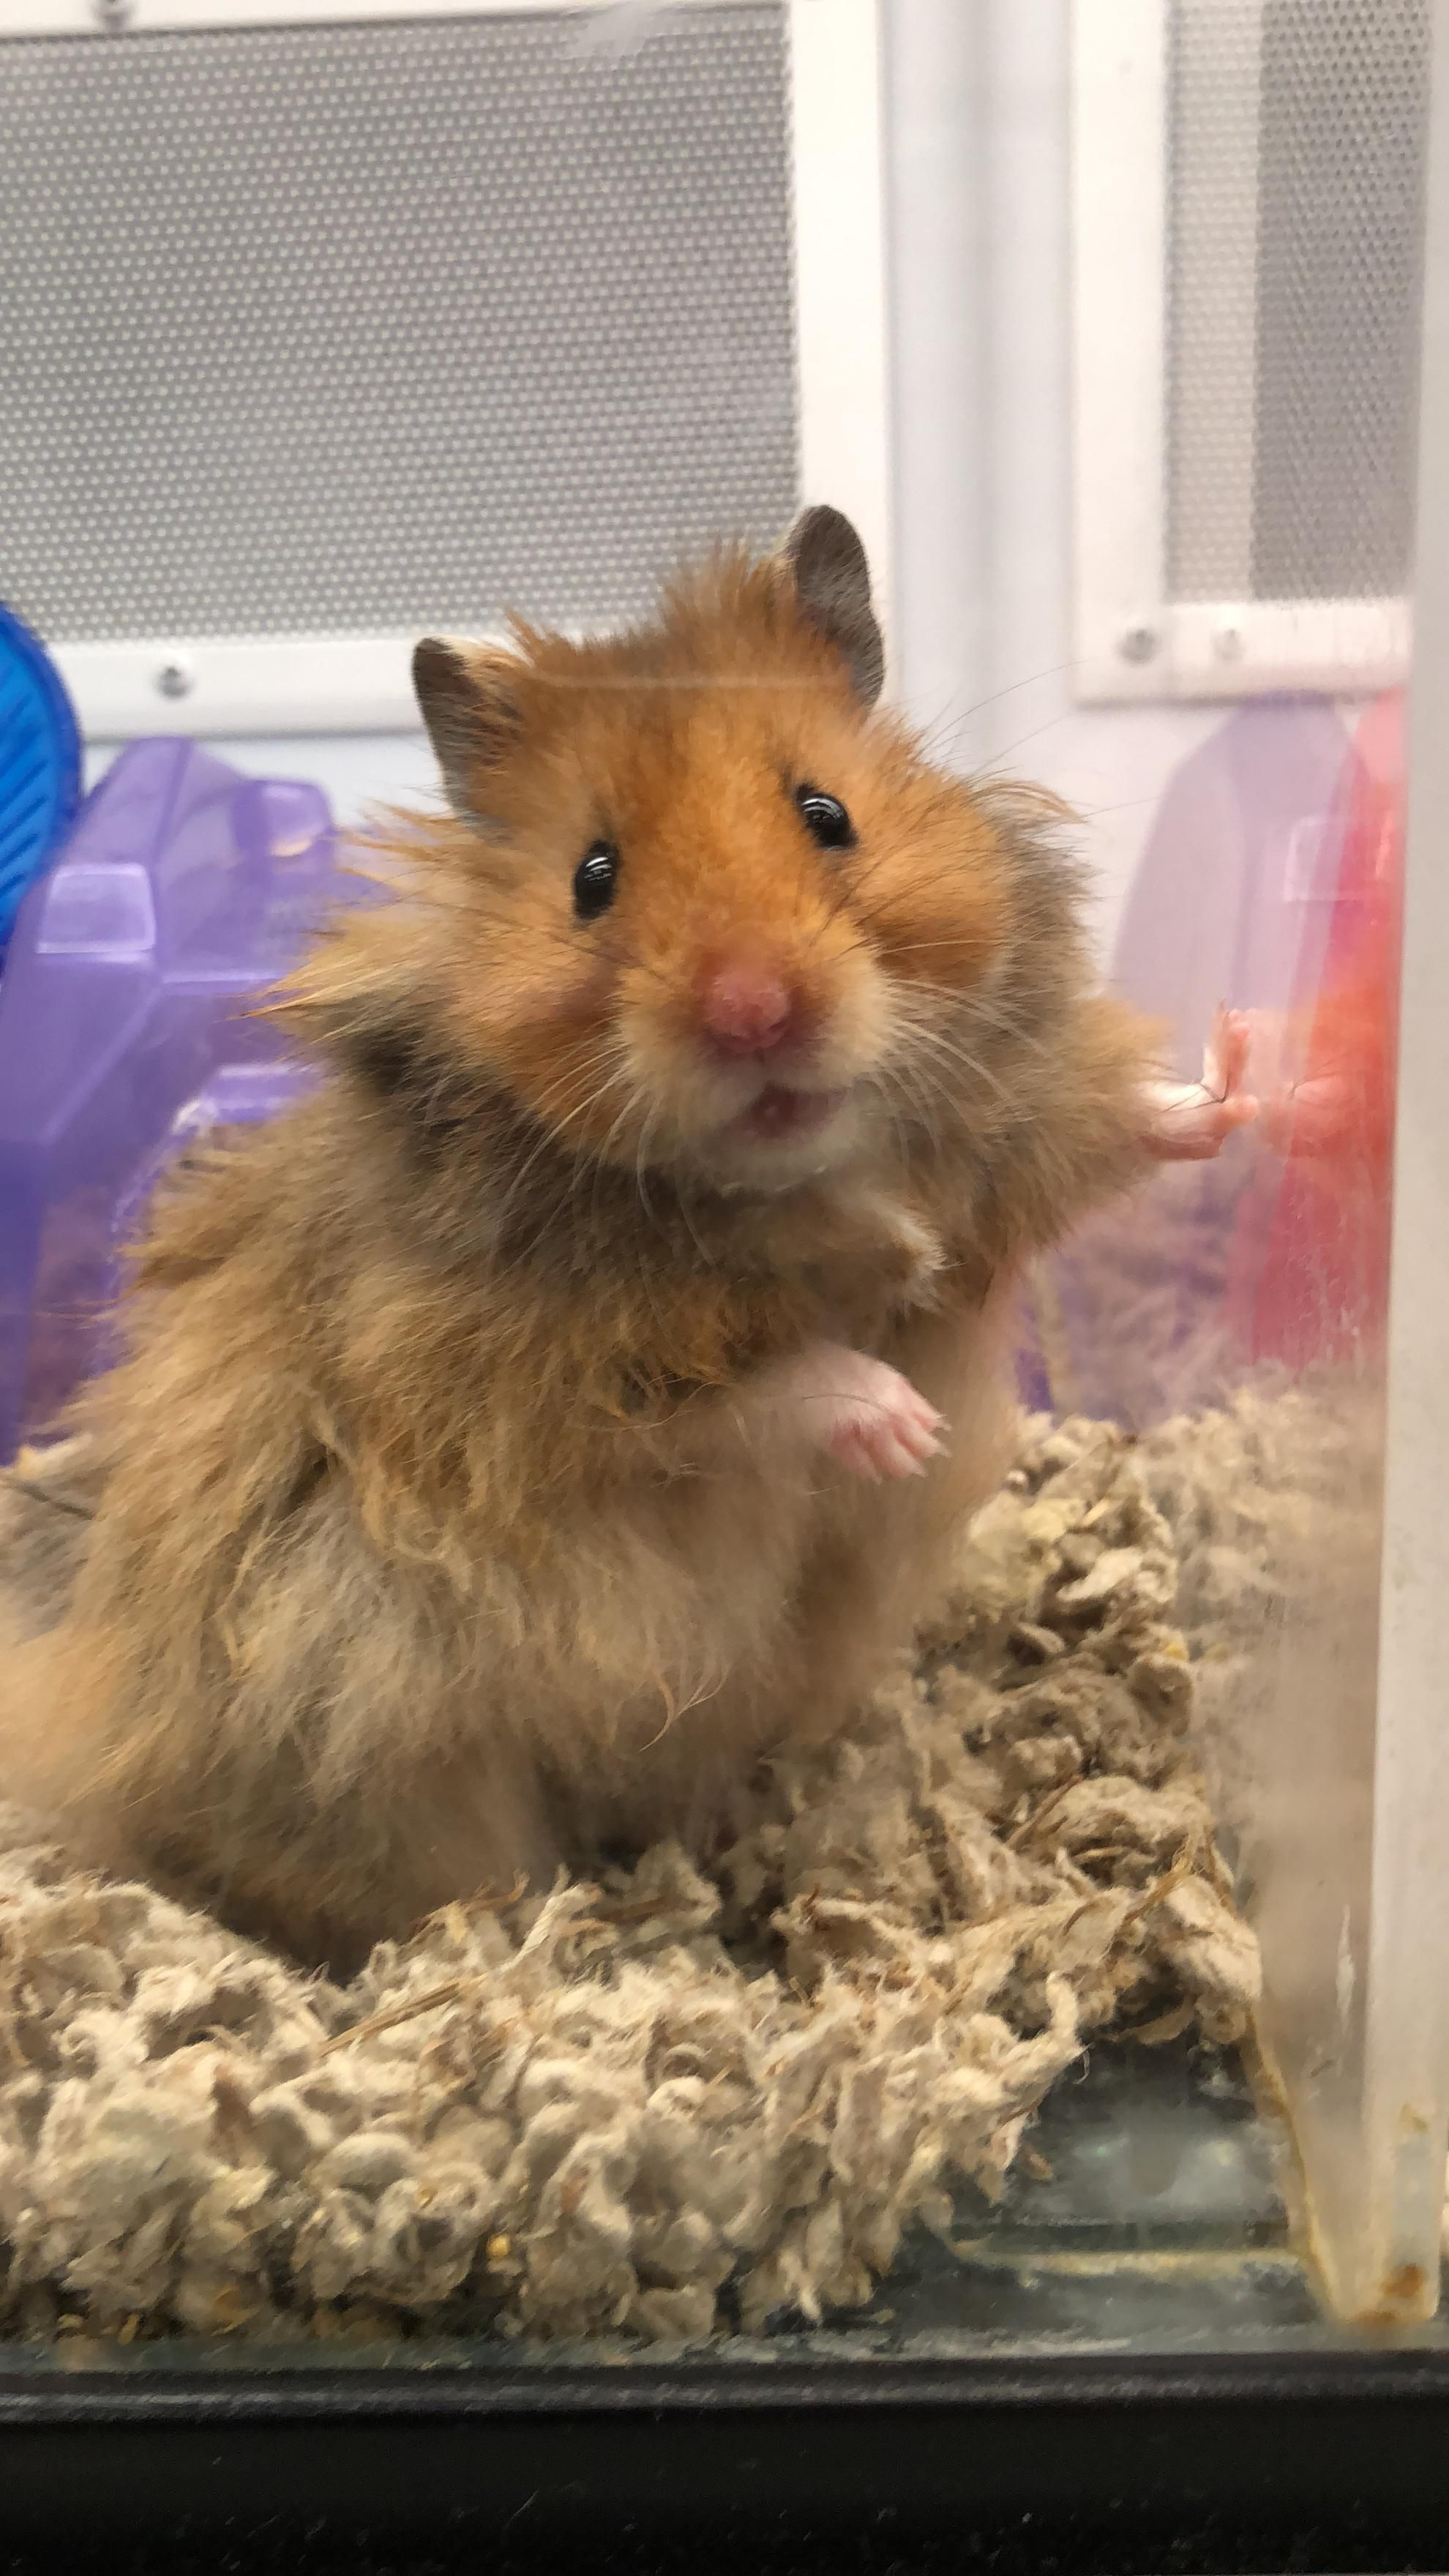 Cuteeee image by Victoria Jackson in 2020 Hamster life